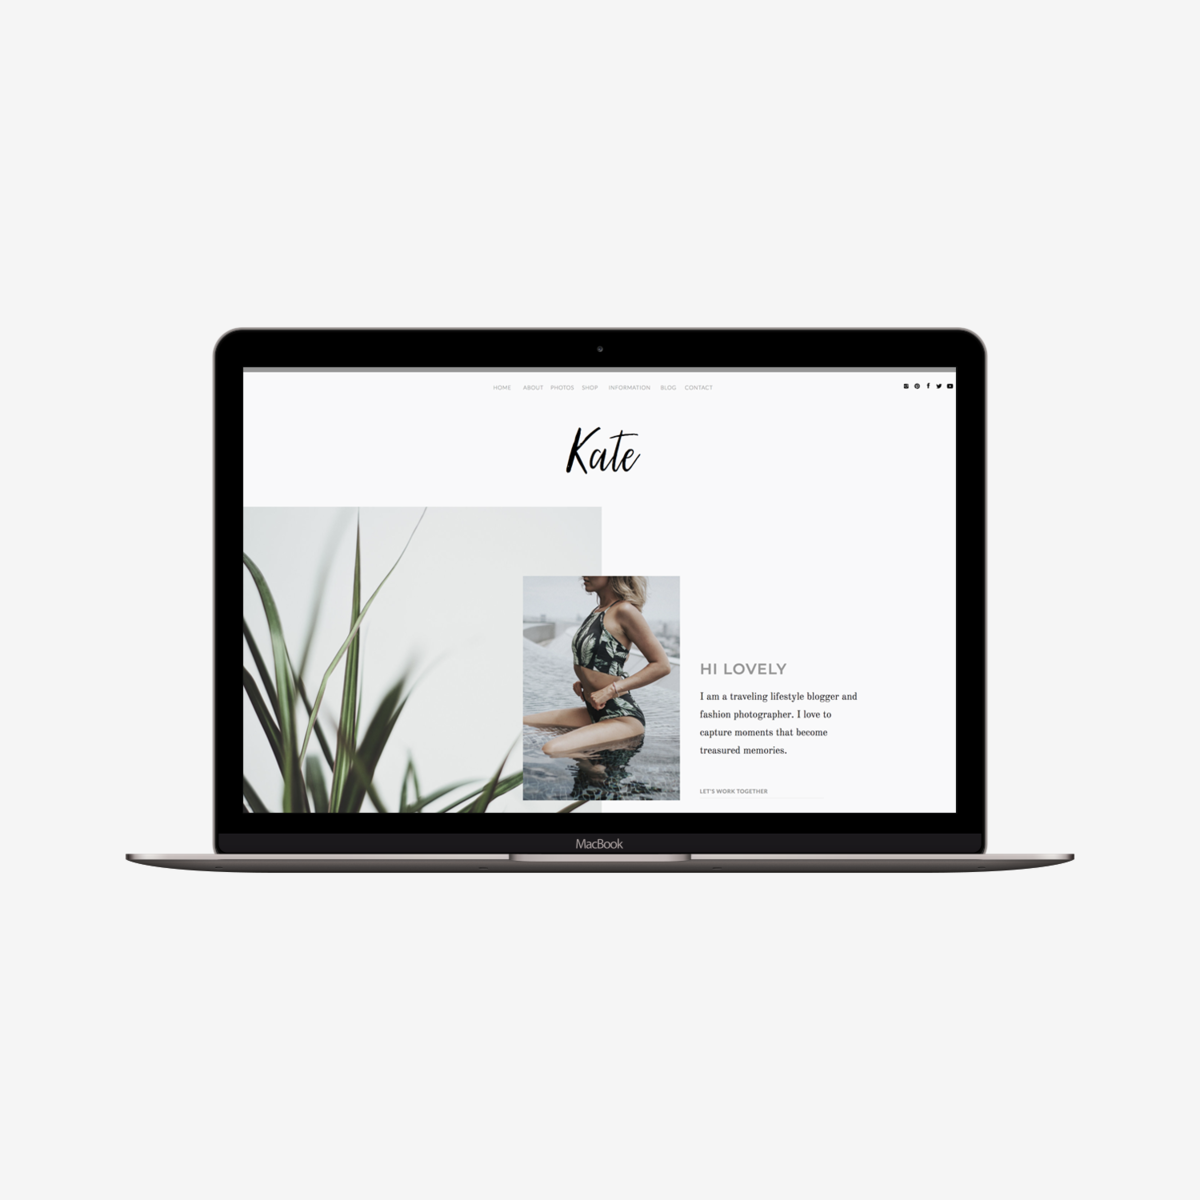 The Roar Showit Web Design Template Kate Macbook Image